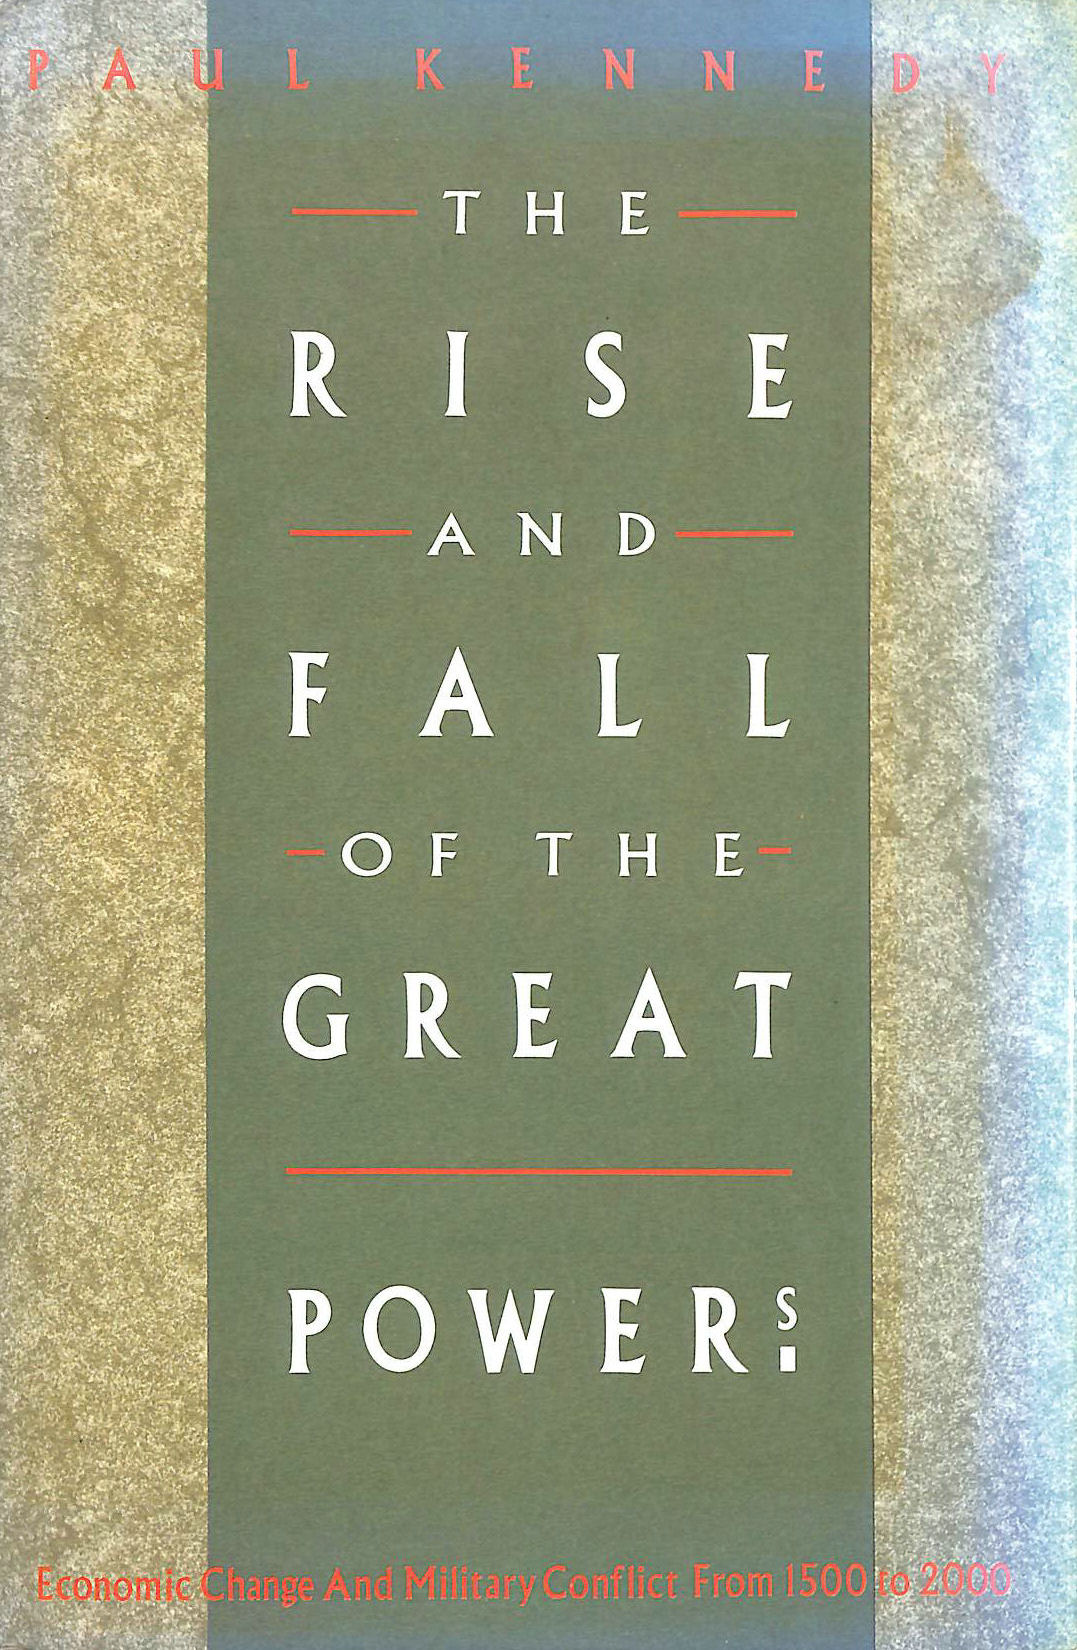 Image for The Rise and Fall of the Great Powers: Economic Change and Military Conflict from 1500-2000